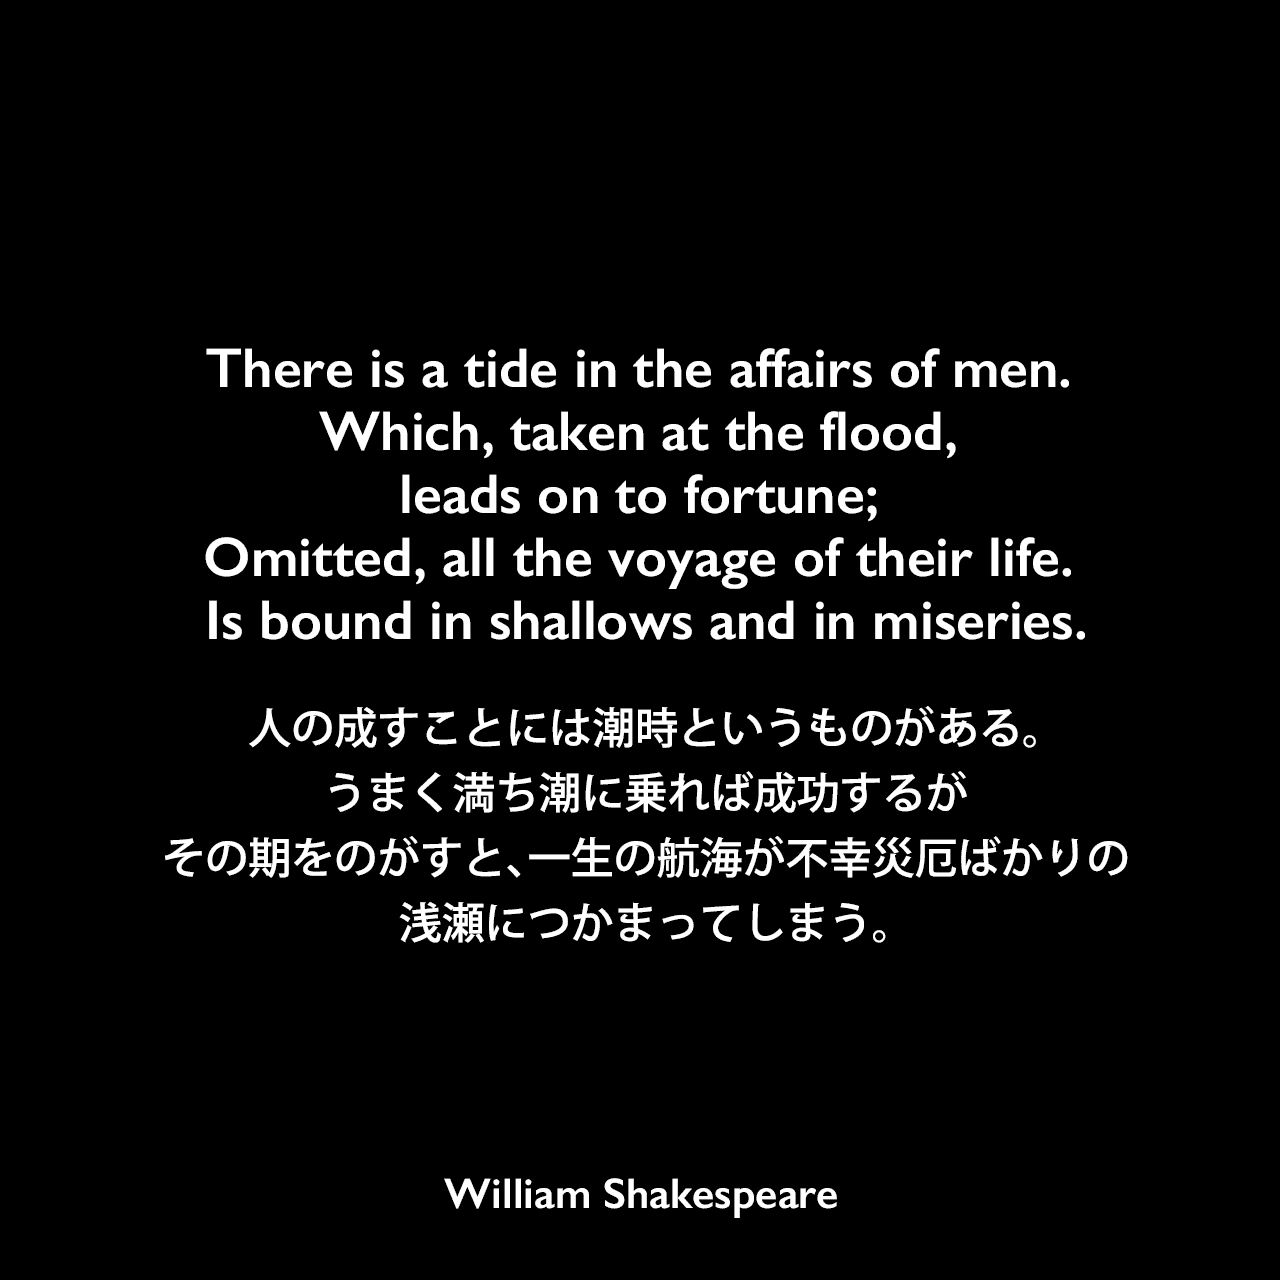 There is a tide in the affairs of men. Which, taken at the flood, leads on to fortune; Omitted, all the voyage of their life. Is bound in shallows and in miseries.人の成すことには潮時というものがある。うまく満ち潮に乗れば成功するが、その期をのがすと、一生の航海が不幸災厄ばかりの浅瀬につかまってしまう。William Shakespeare